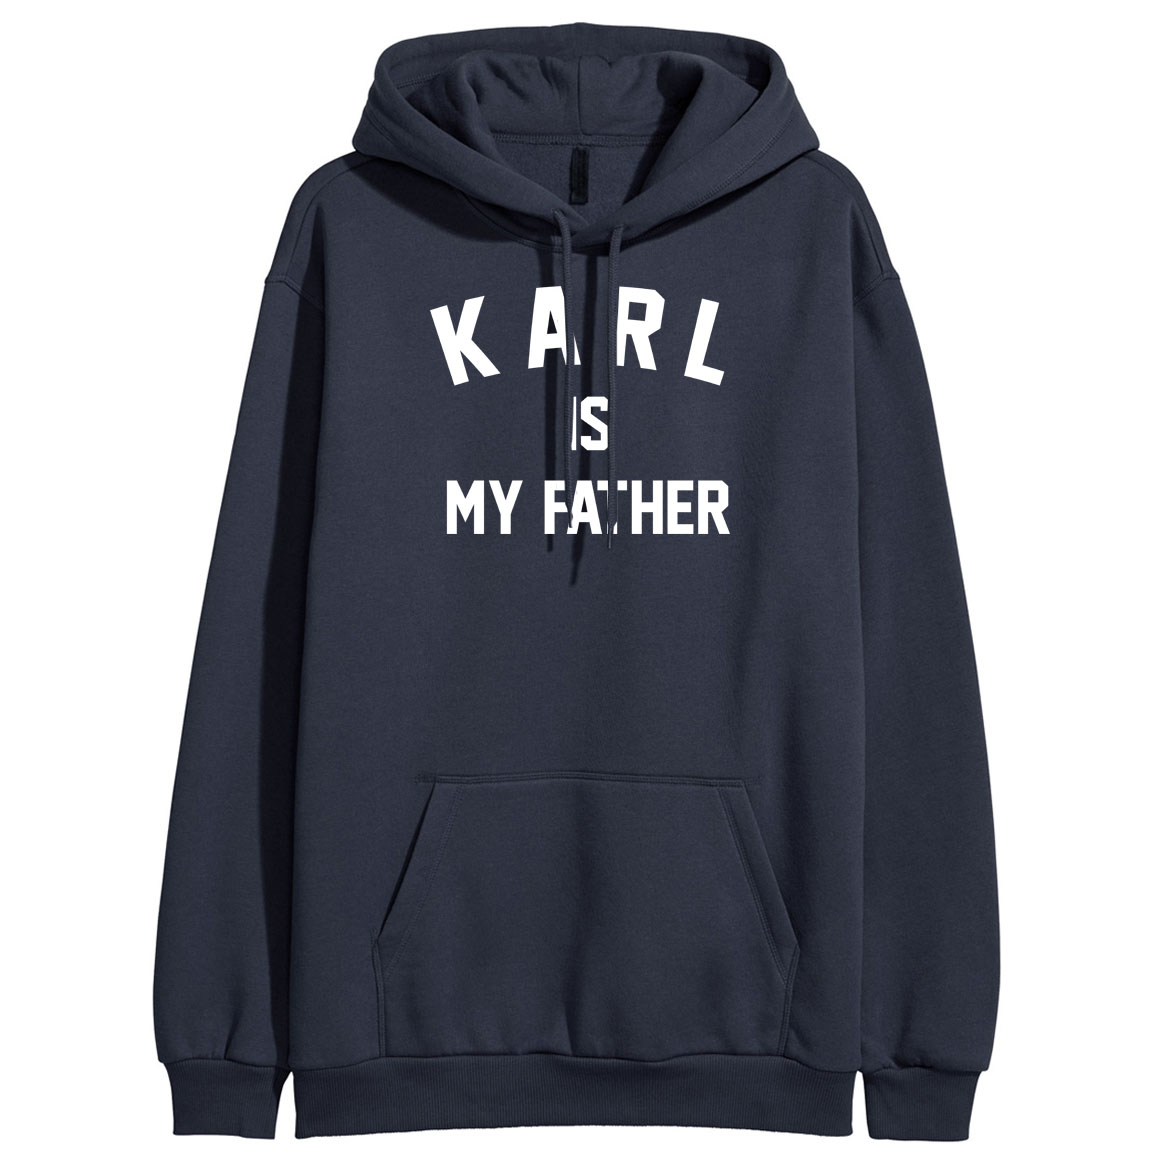 KARL IS MY FATHER Funny Print Hoodies Women 2019 Spring Winter Sweatshirt For Women Fleece Sportswear Harajuku Sweatshirts K-pop